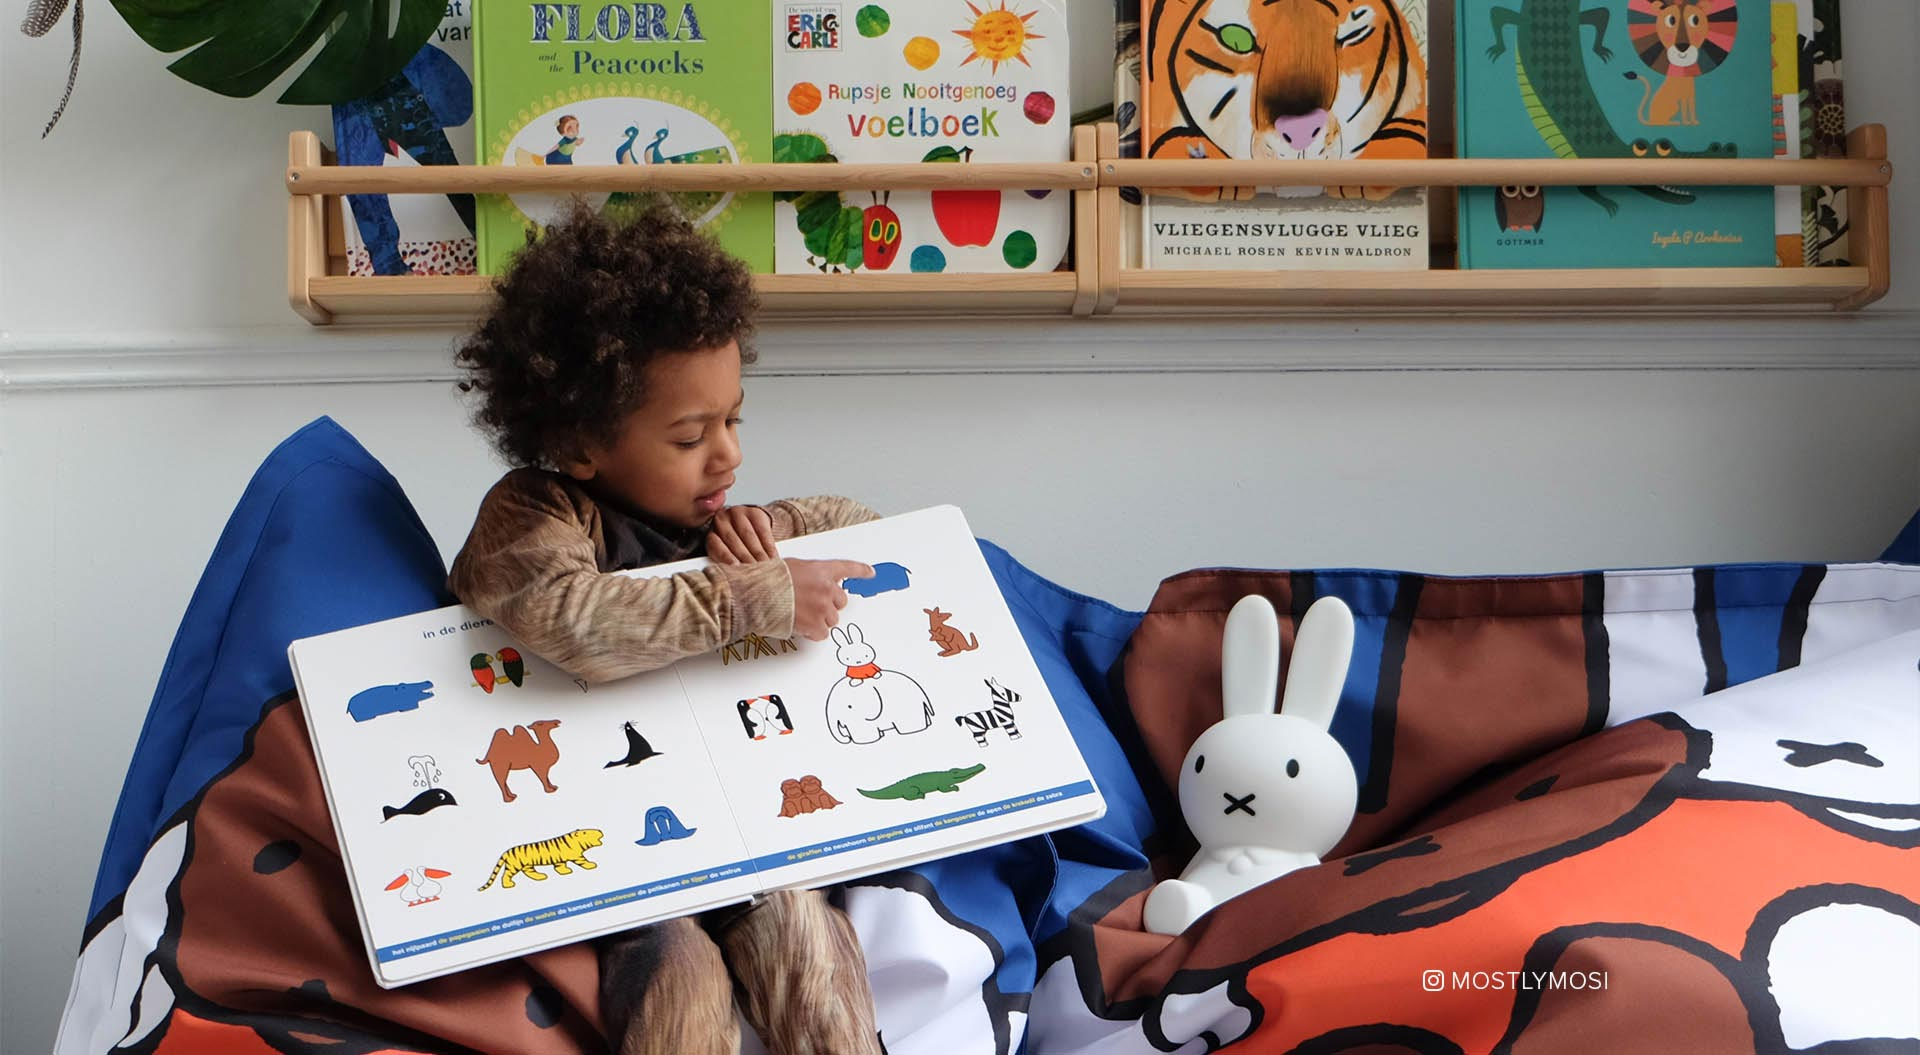 Miffy Dreambags, Mosi reading Dick Bruna illustrated book with Miffy First Light photo by Rio van der Oes